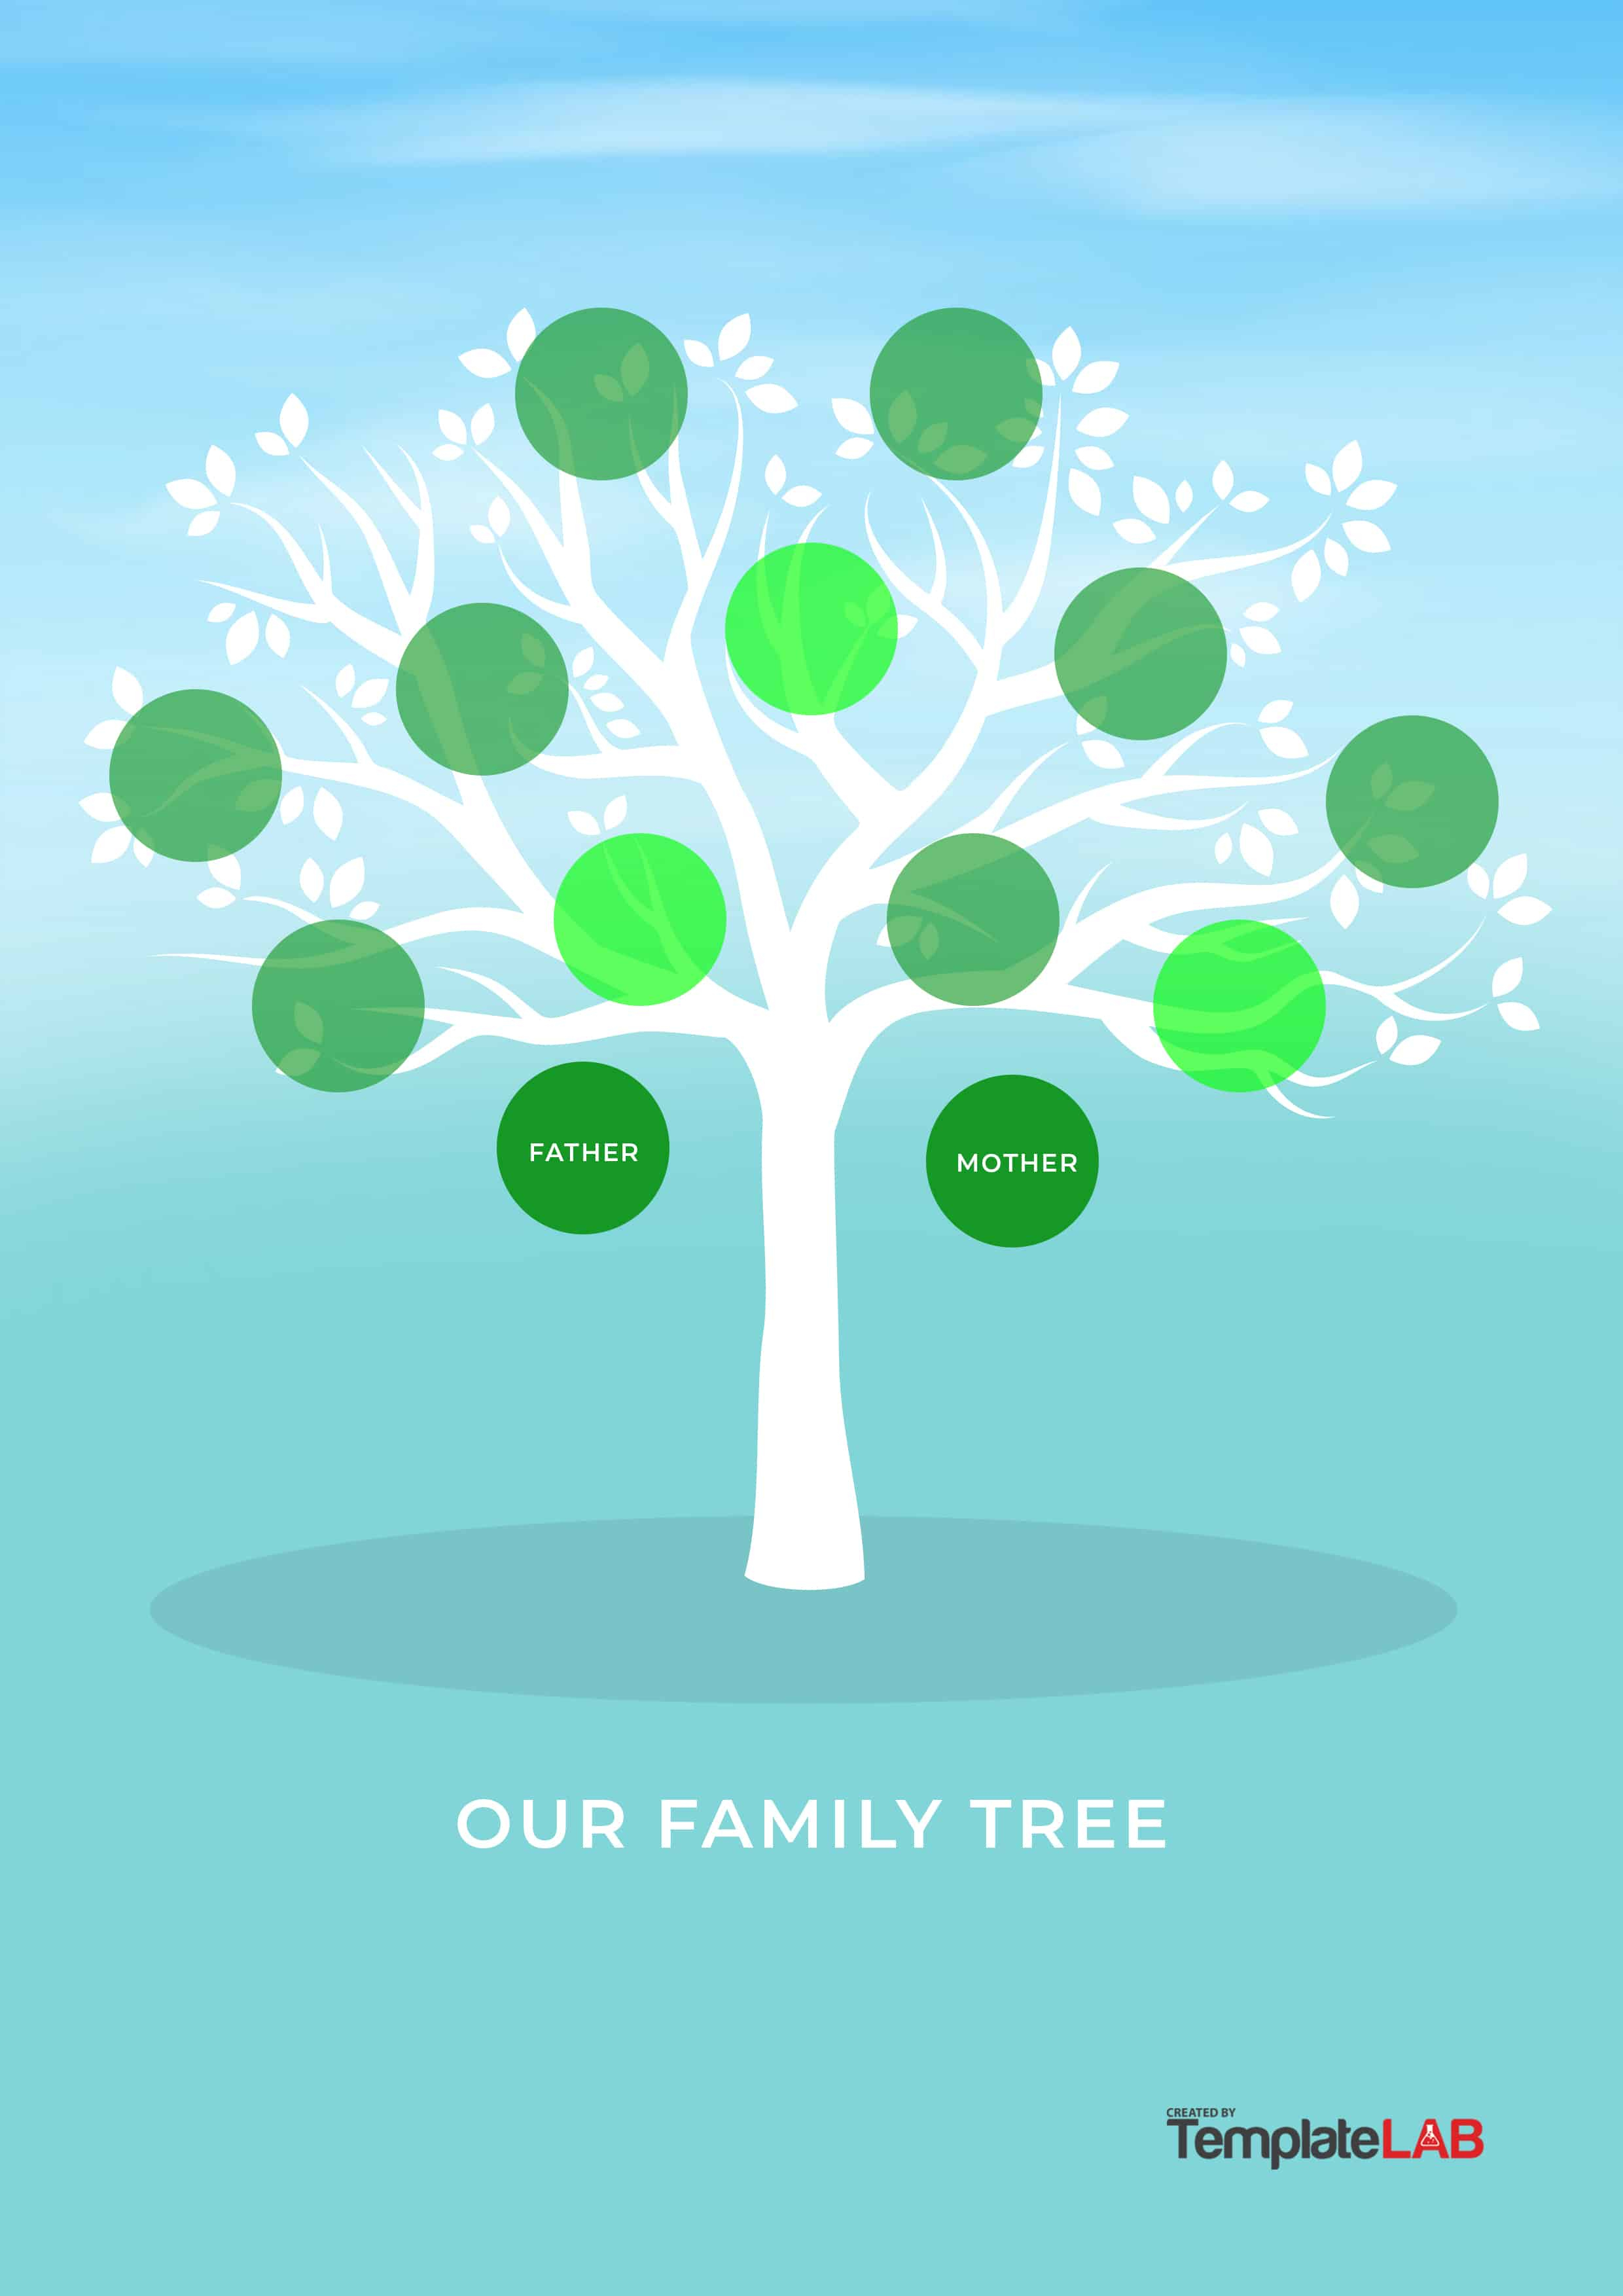 50+ Free Family Tree Templates (Word, Excel, Pdf) ᐅ Template Lab - Free Printable Family Tree